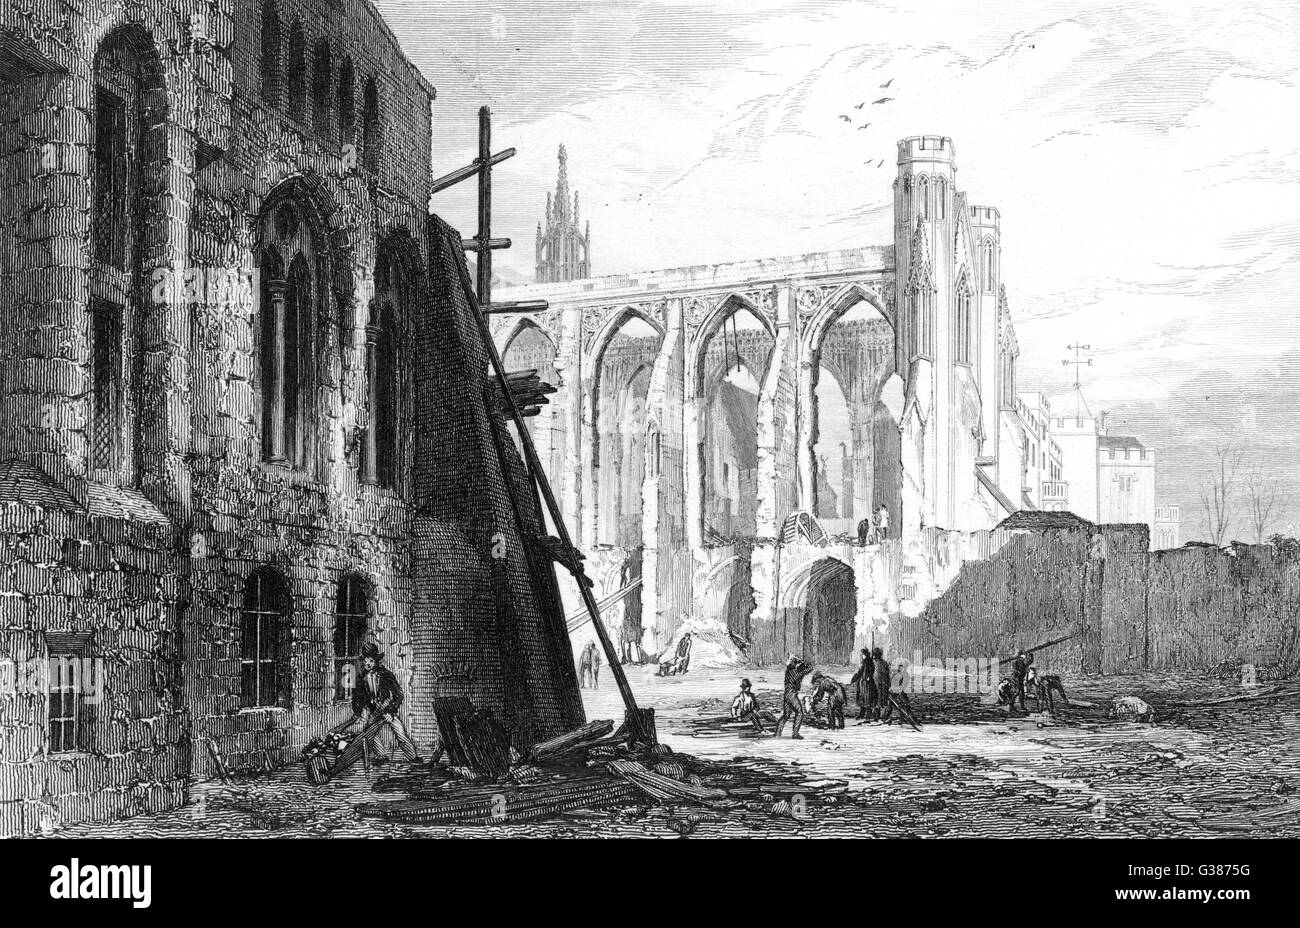 Clearing work, St. Stephen's  chapel, following the fire of  1834.       Date: 1834 - Stock Image